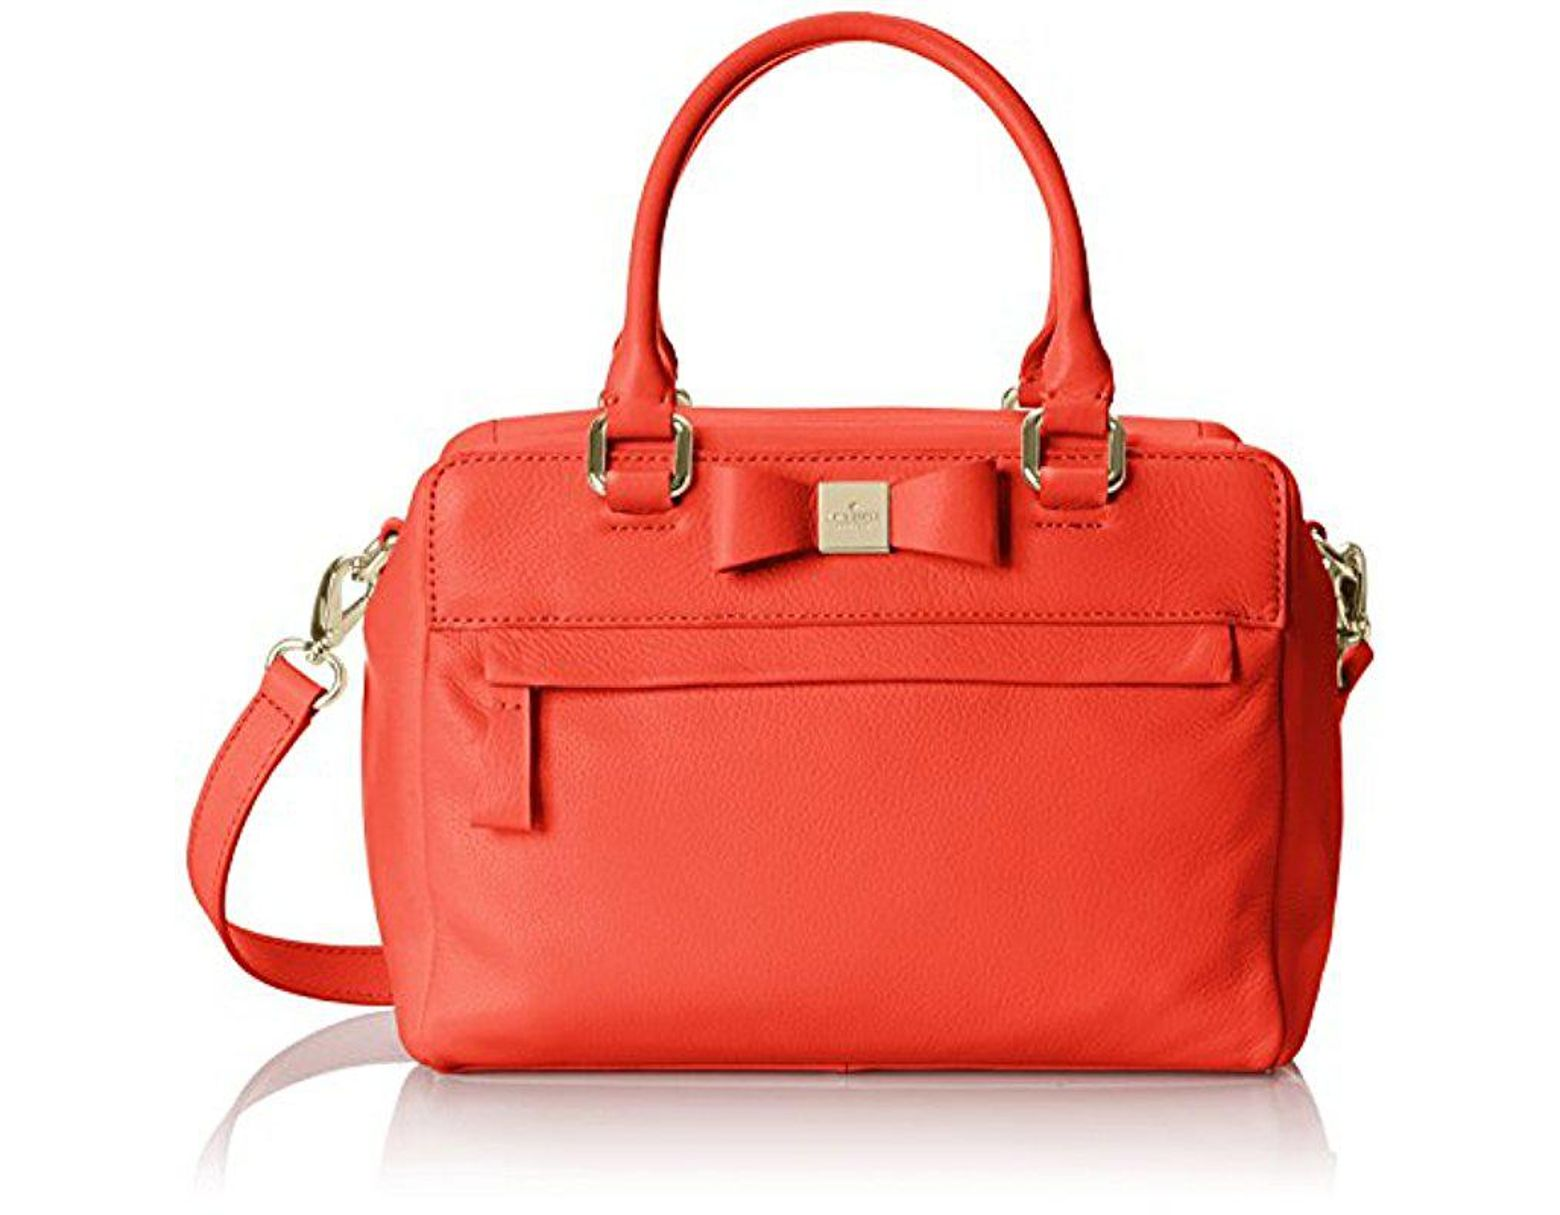 1ecbf1c0a418 Kate Spade Renny Drive Ashton Top Handle Bag in Red - Lyst